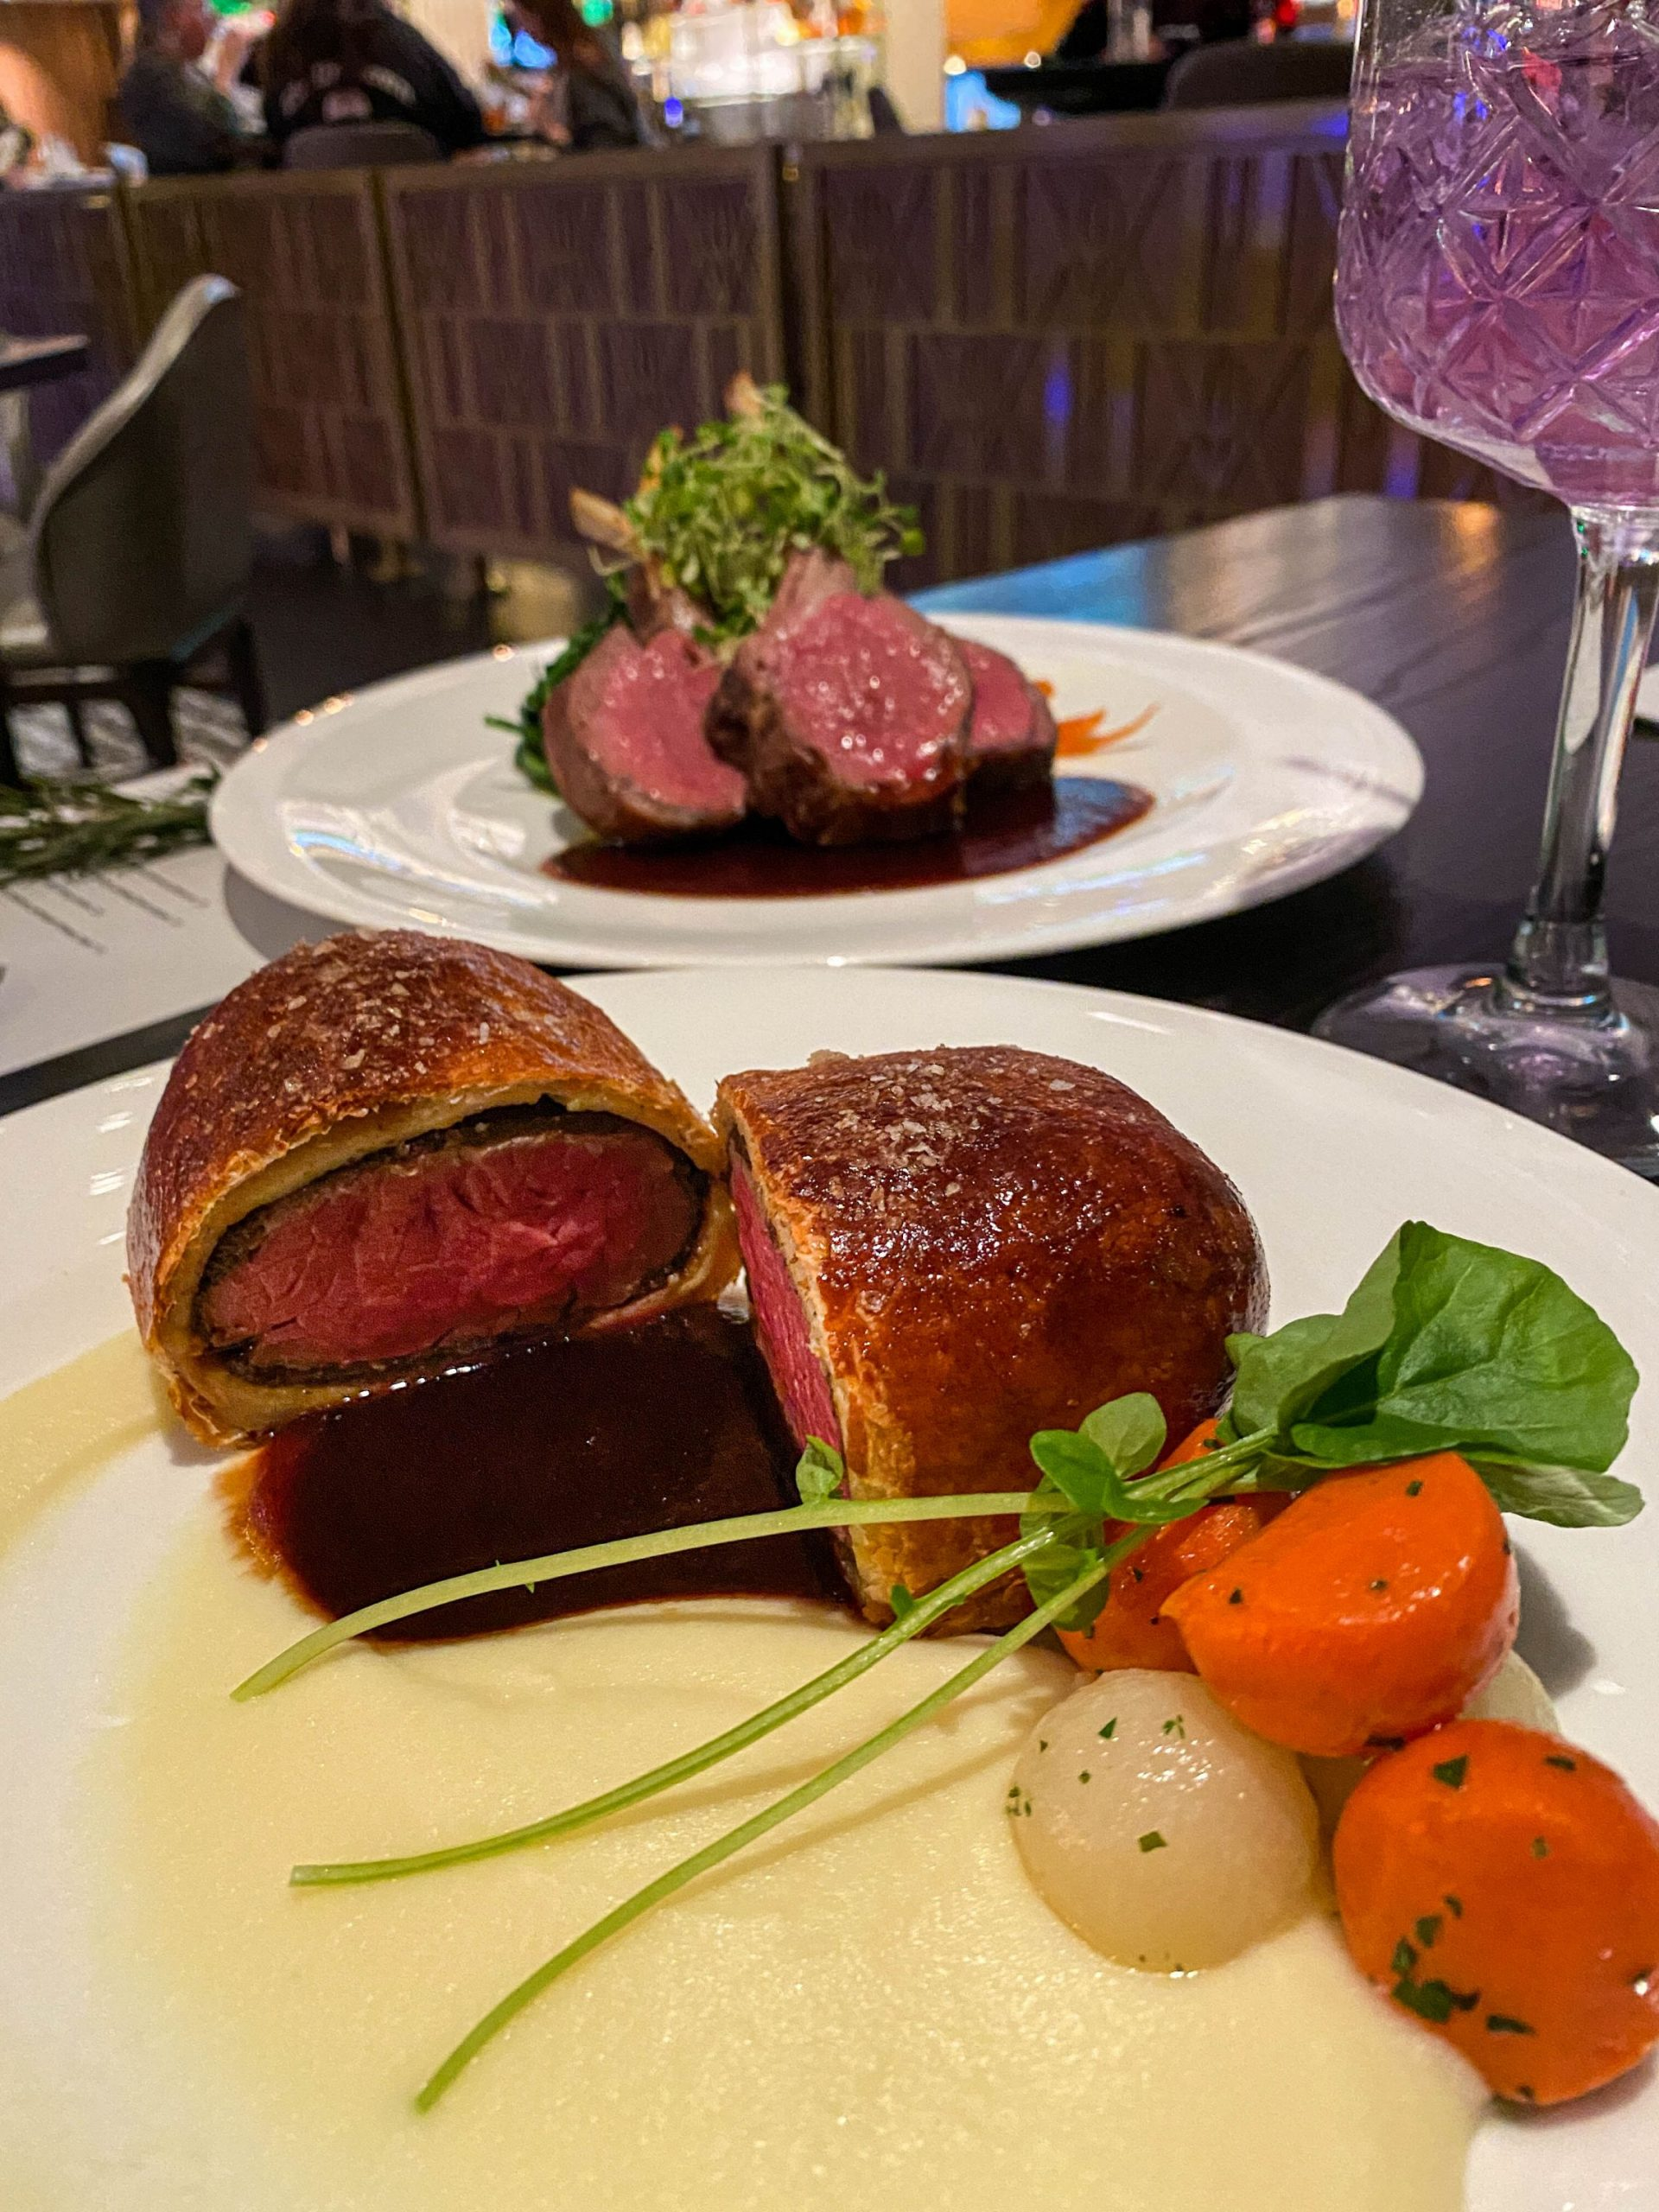 Beef Wellington with potato puree, glazed root vegetables, red wine demi-glace